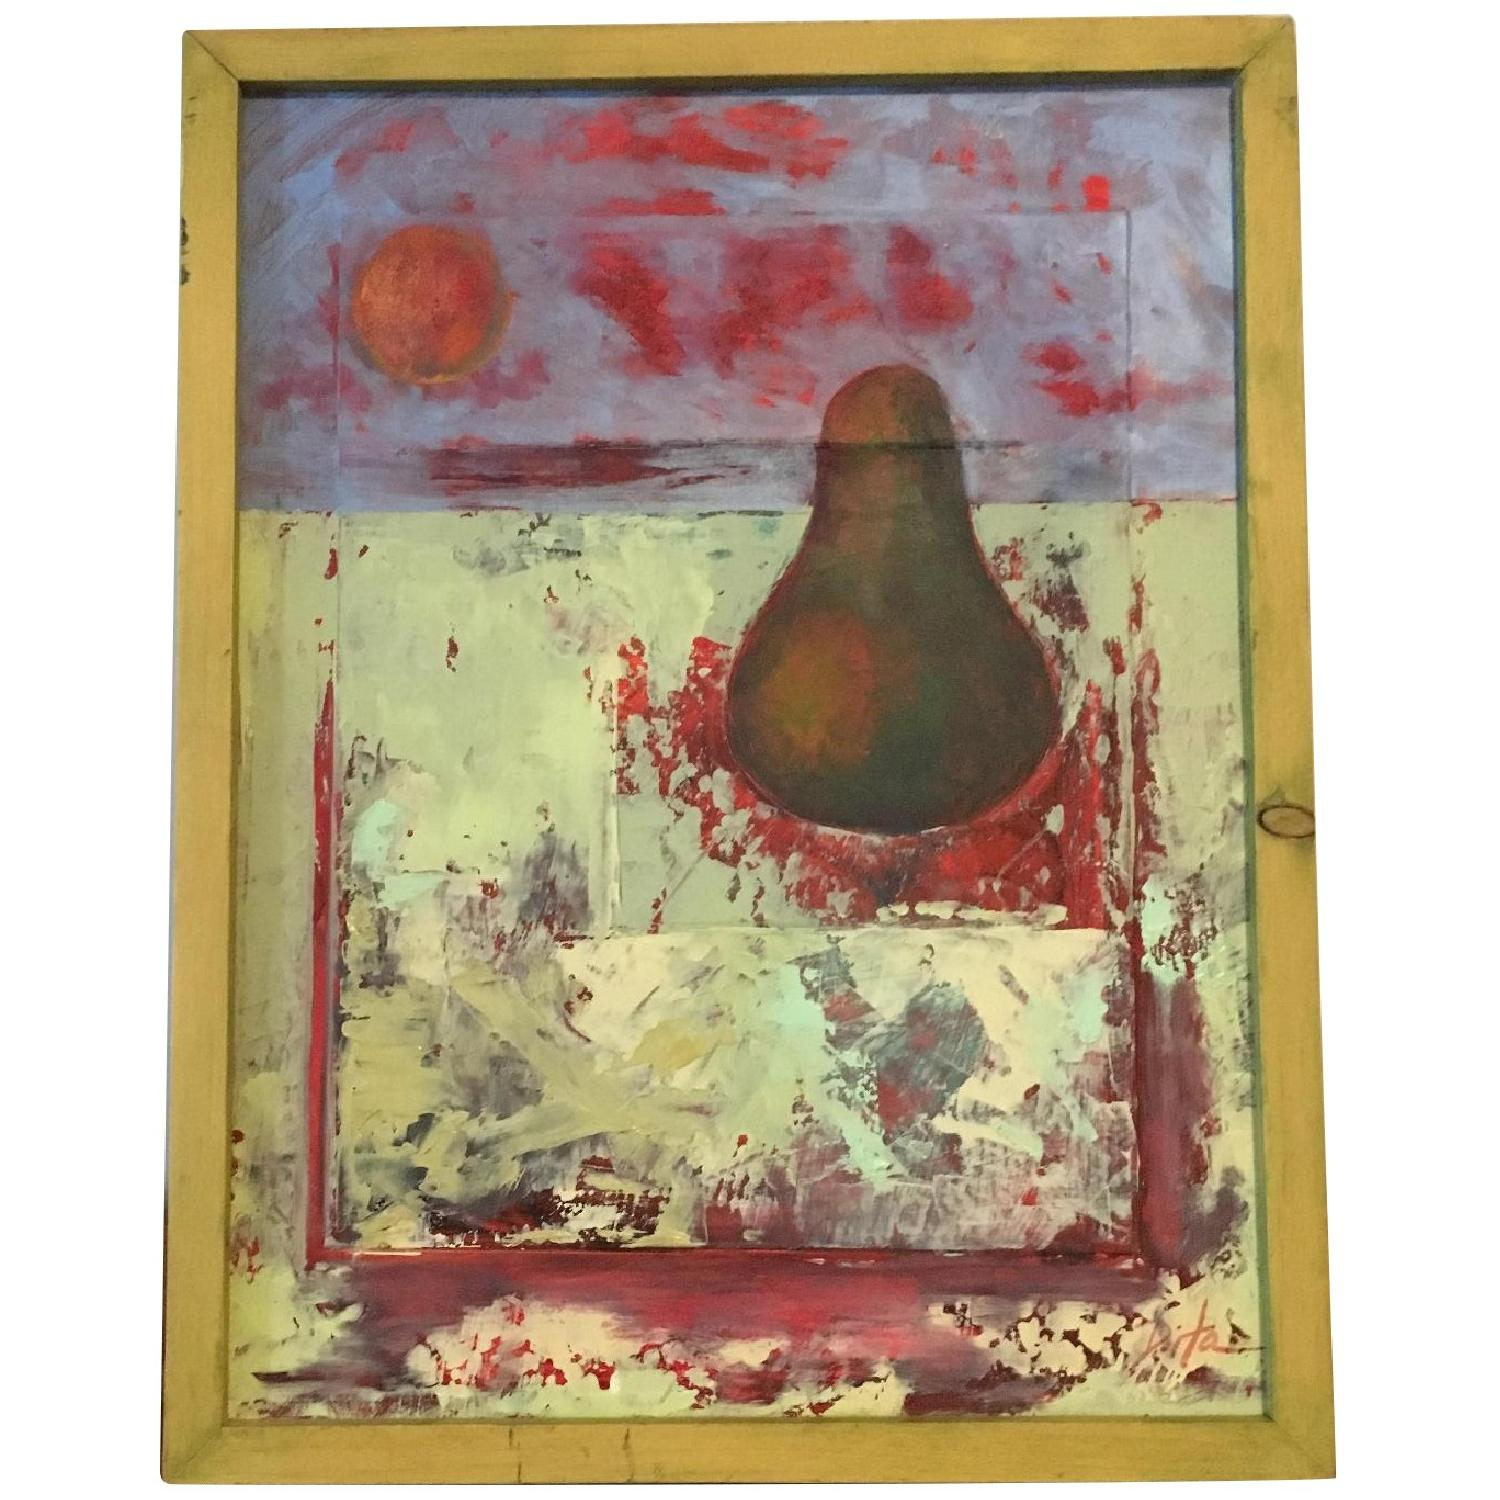 Framed Painting Pear on Wood - image-0